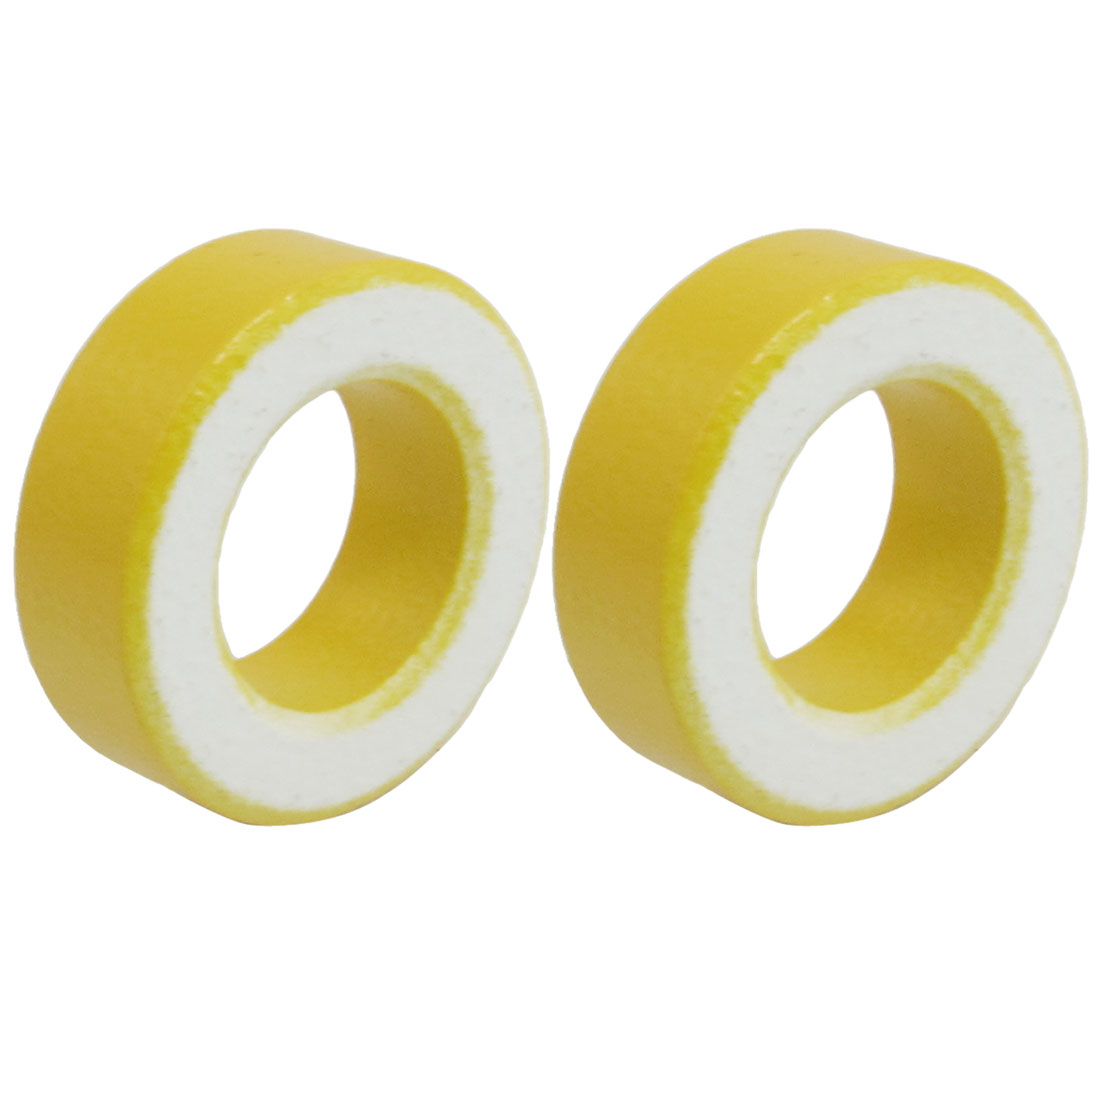 2 Pcs 33mm x 19mm x 11mm Yellow White Iron Core Ferrite Rings Toroid